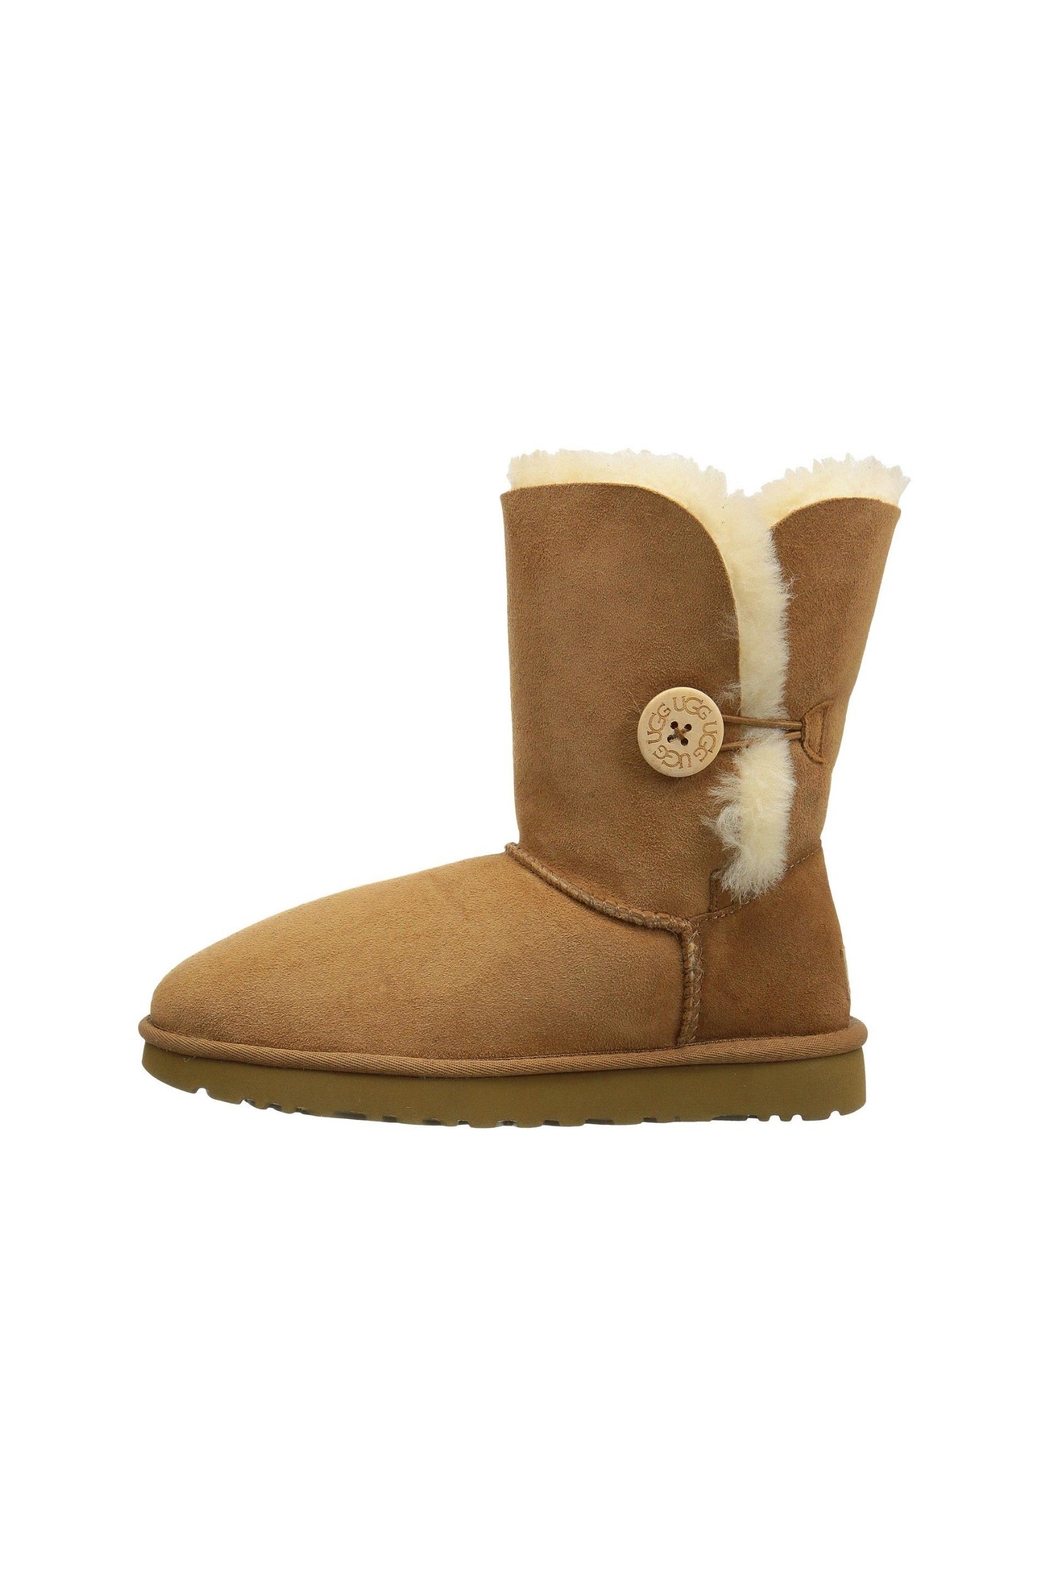 UGG Australia Women's Bailey Button-Ii - Main Image